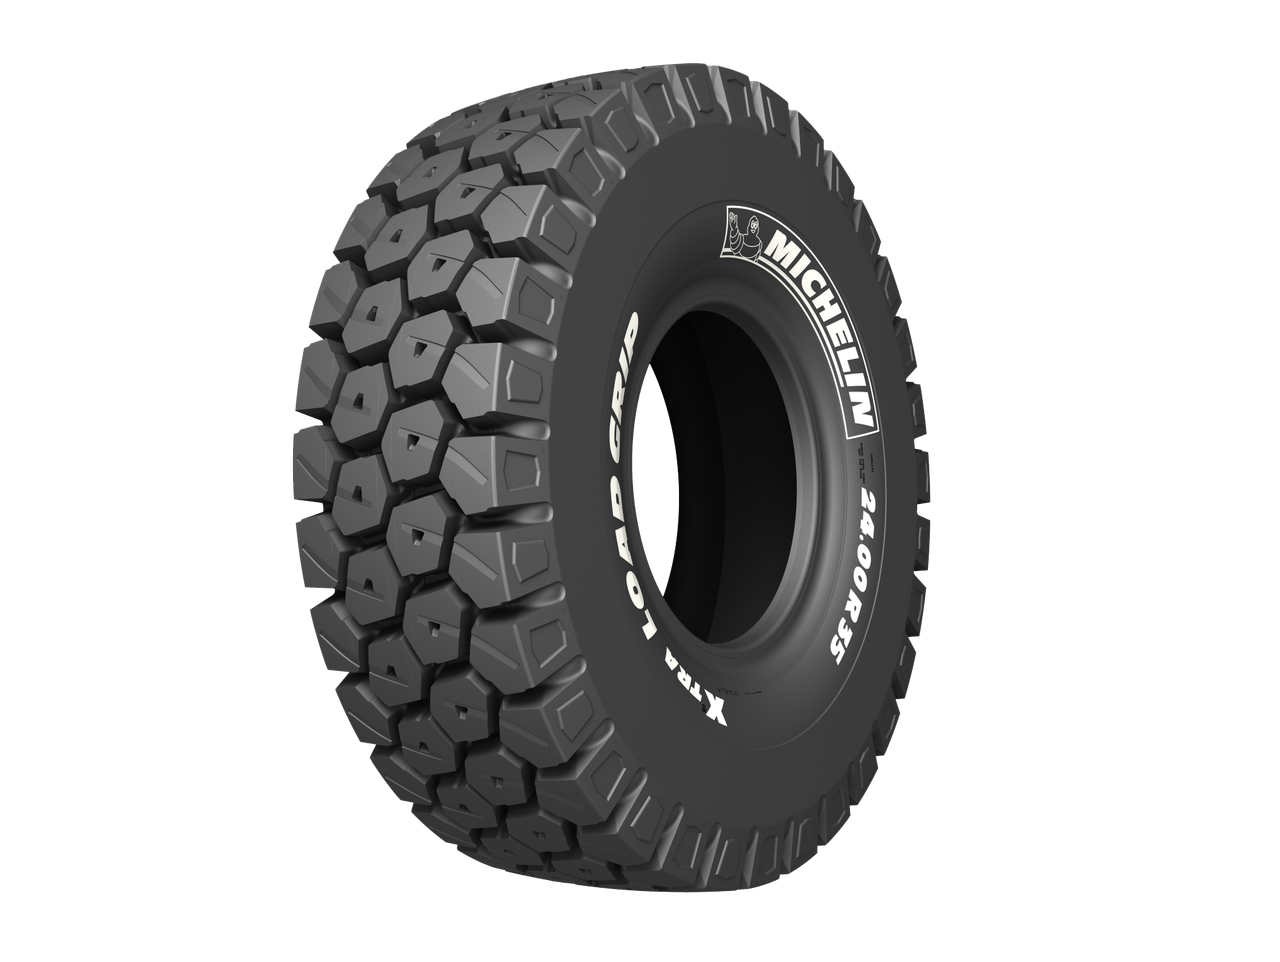 Шина 24.00 R 35 Michelin XTRA LOAD GRIP A4